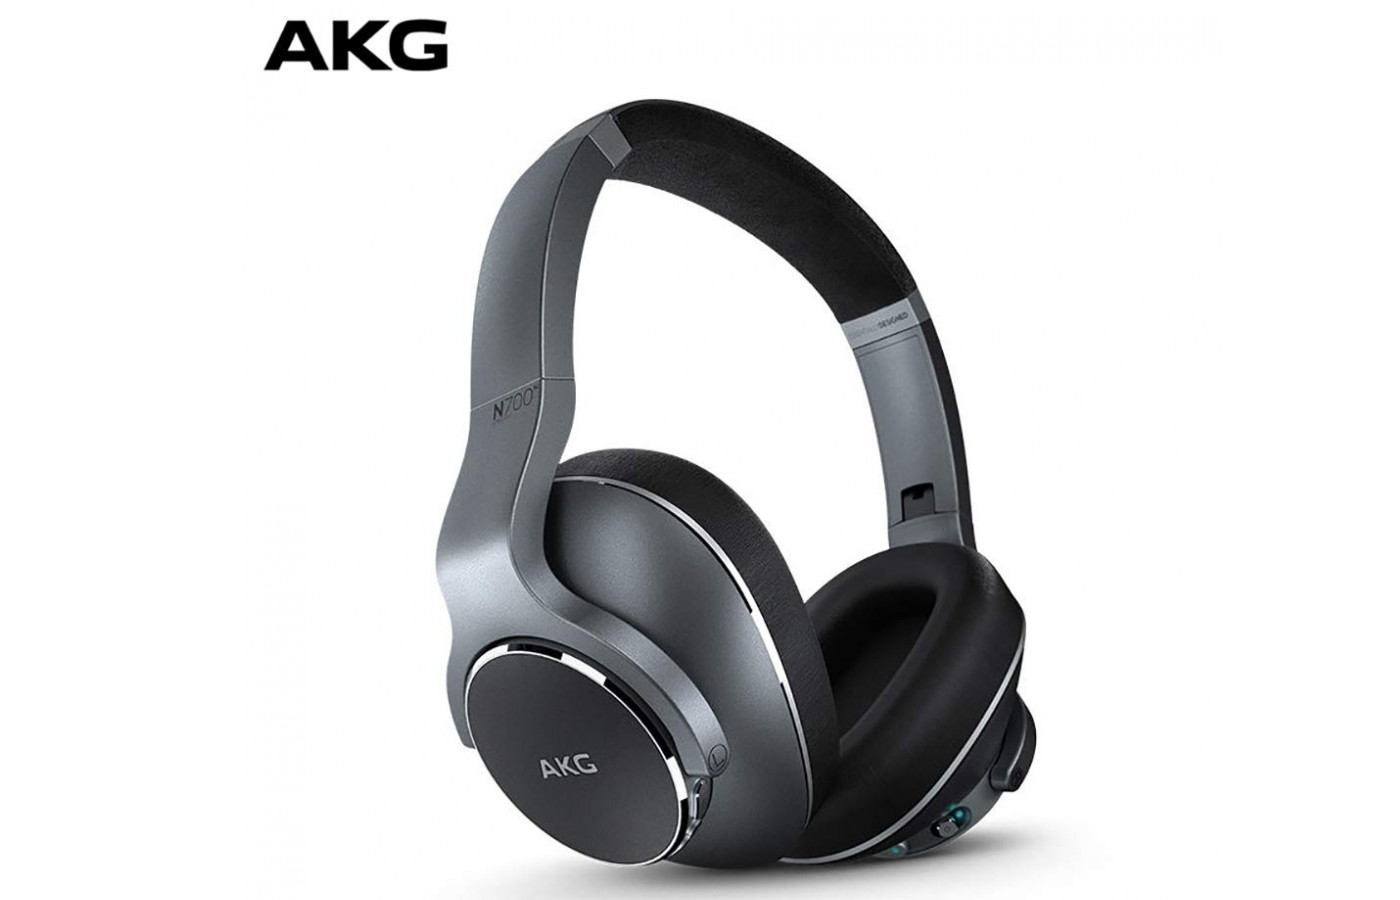 The excellent sound and stylish looks place the AKG N700NC on the list of wireless, noise-canceling headphones worth considering.